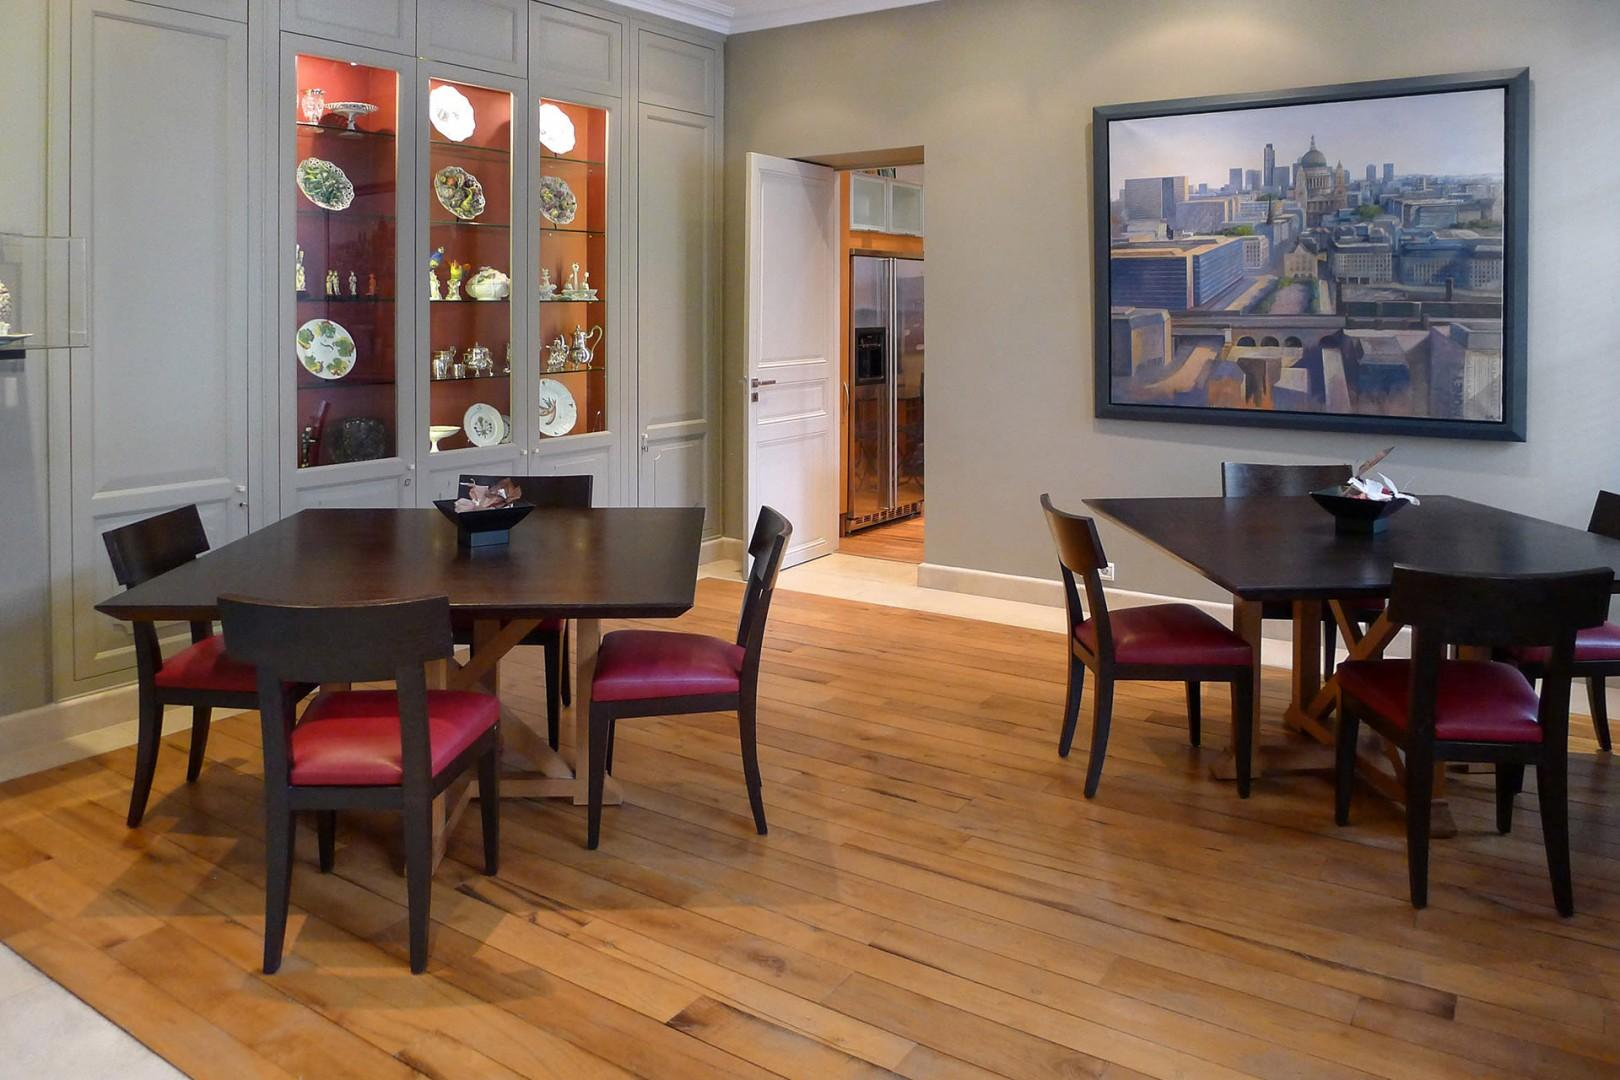 The large dining room with two tables is perfect for entertaining.